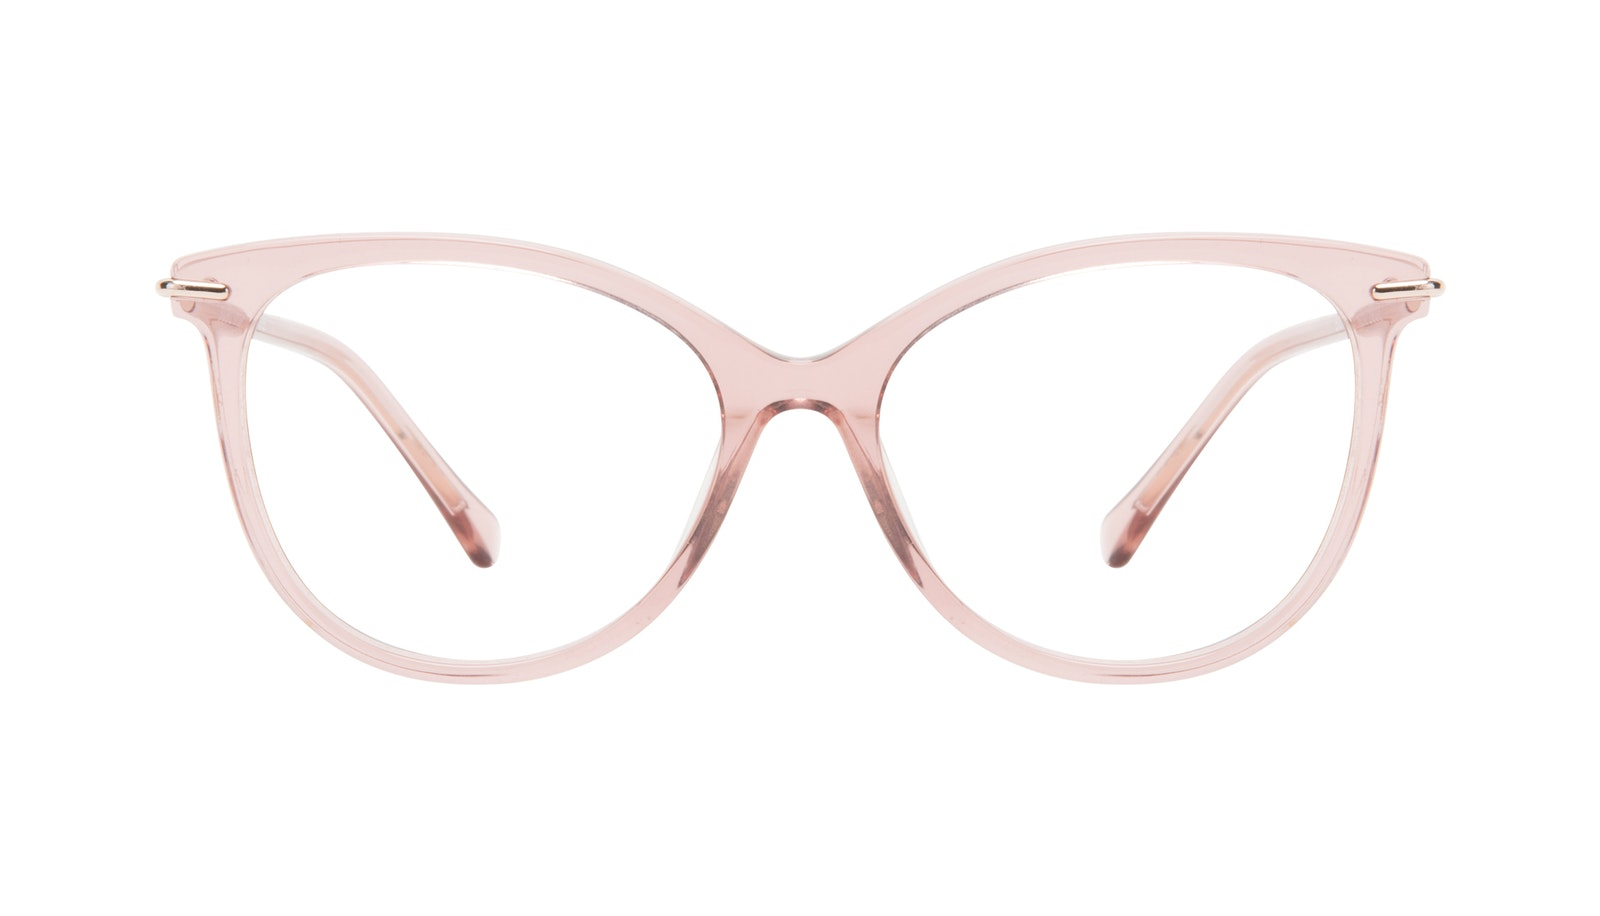 Affordable Fashion Glasses Round Eyeglasses Women Sublime Rose